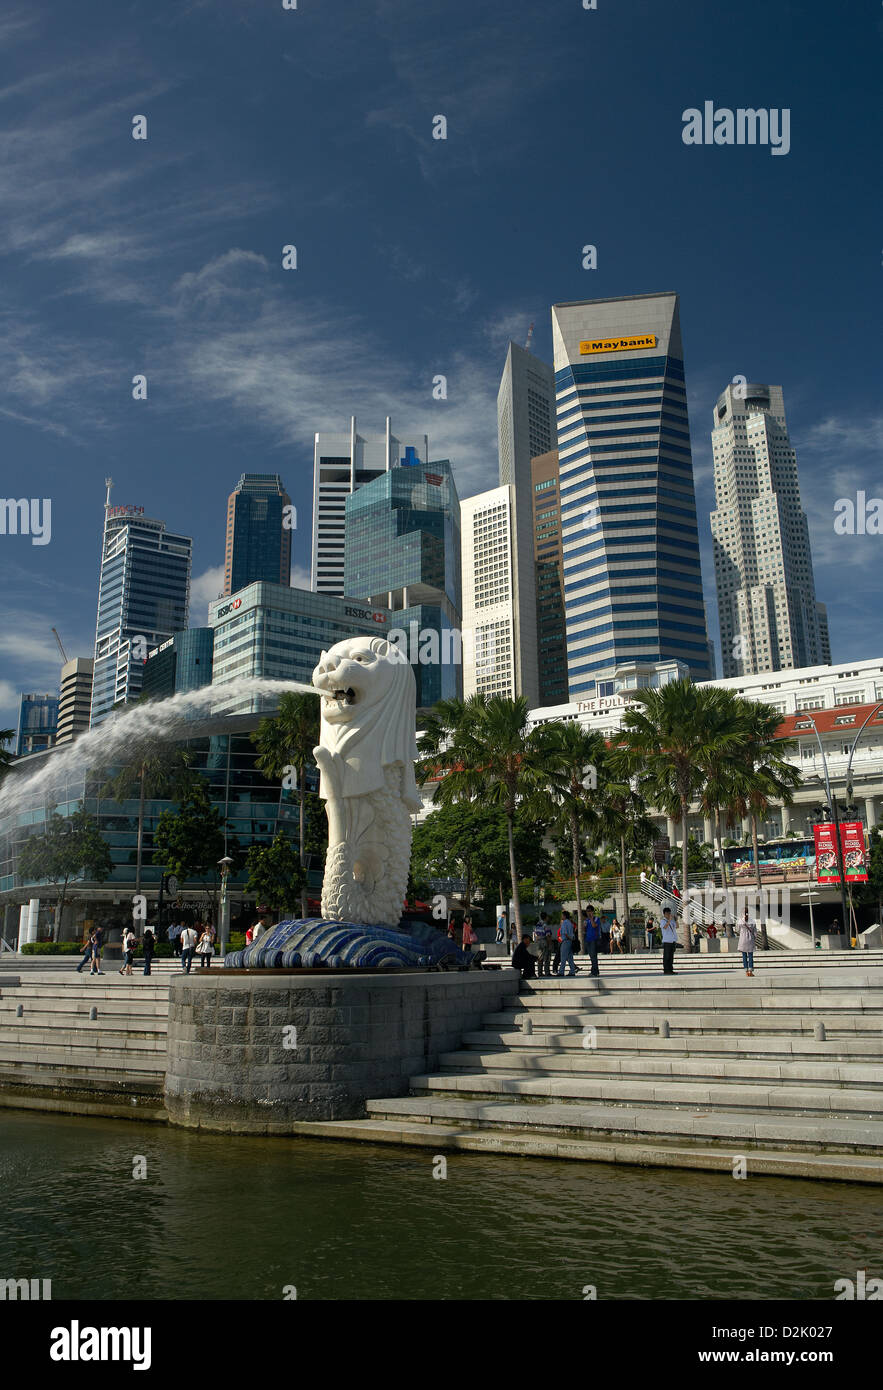 Singapore, Republic of Singapore, the Merlionfigur front of the skyline of the financial district Stock Photo